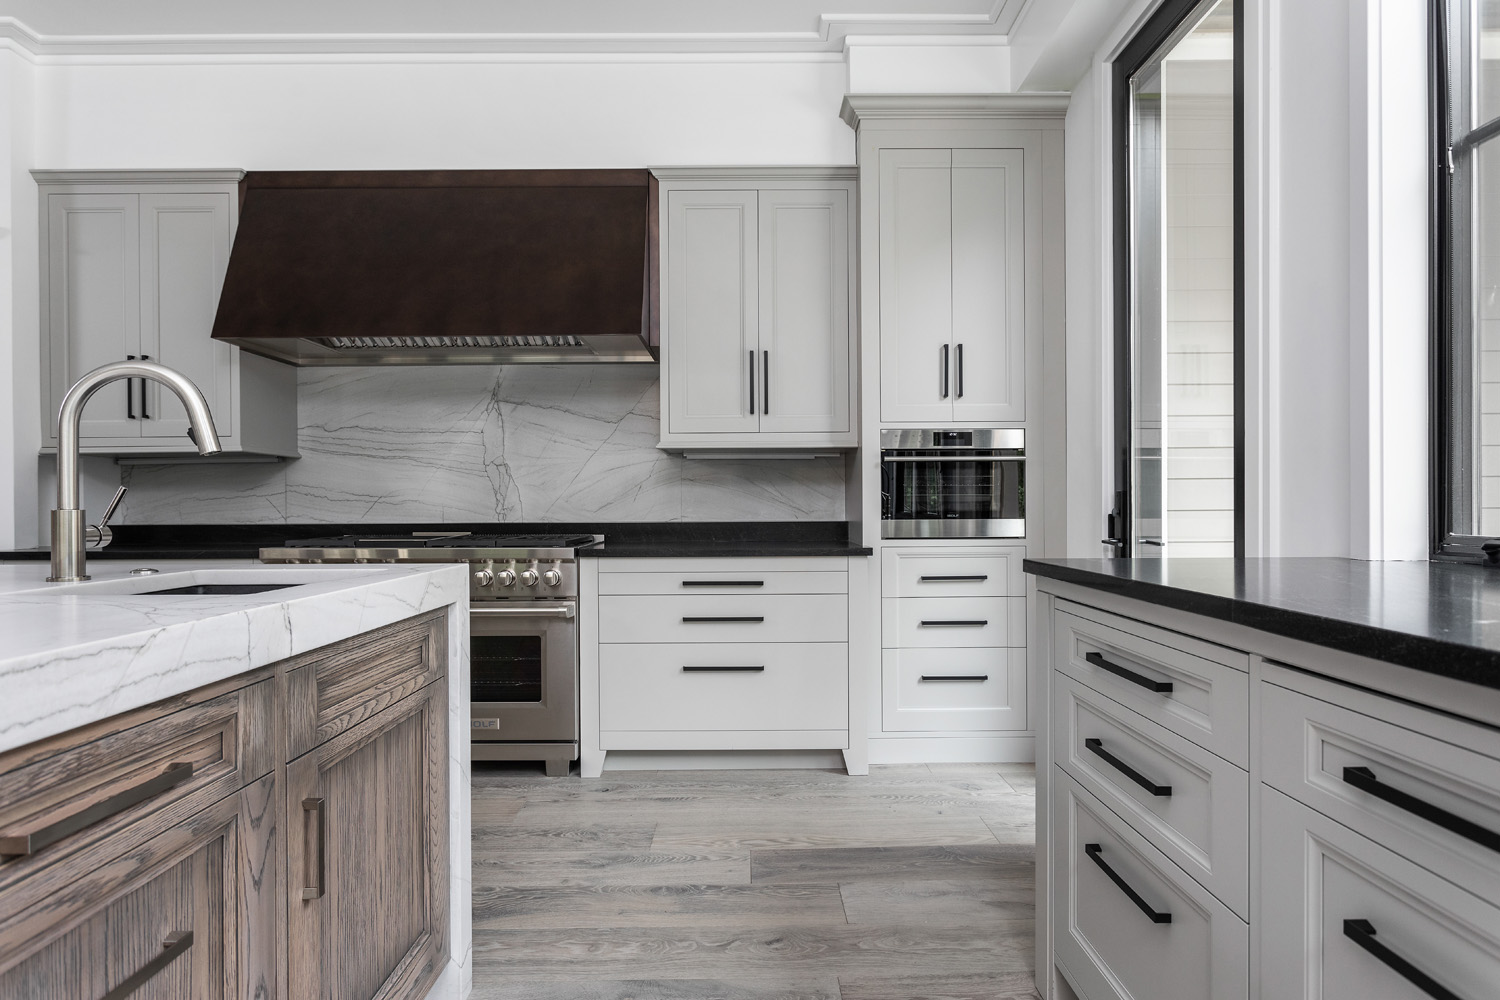 custom kitchen with wooden floors, stainless steel appliances, white cabinets, and dark countertops